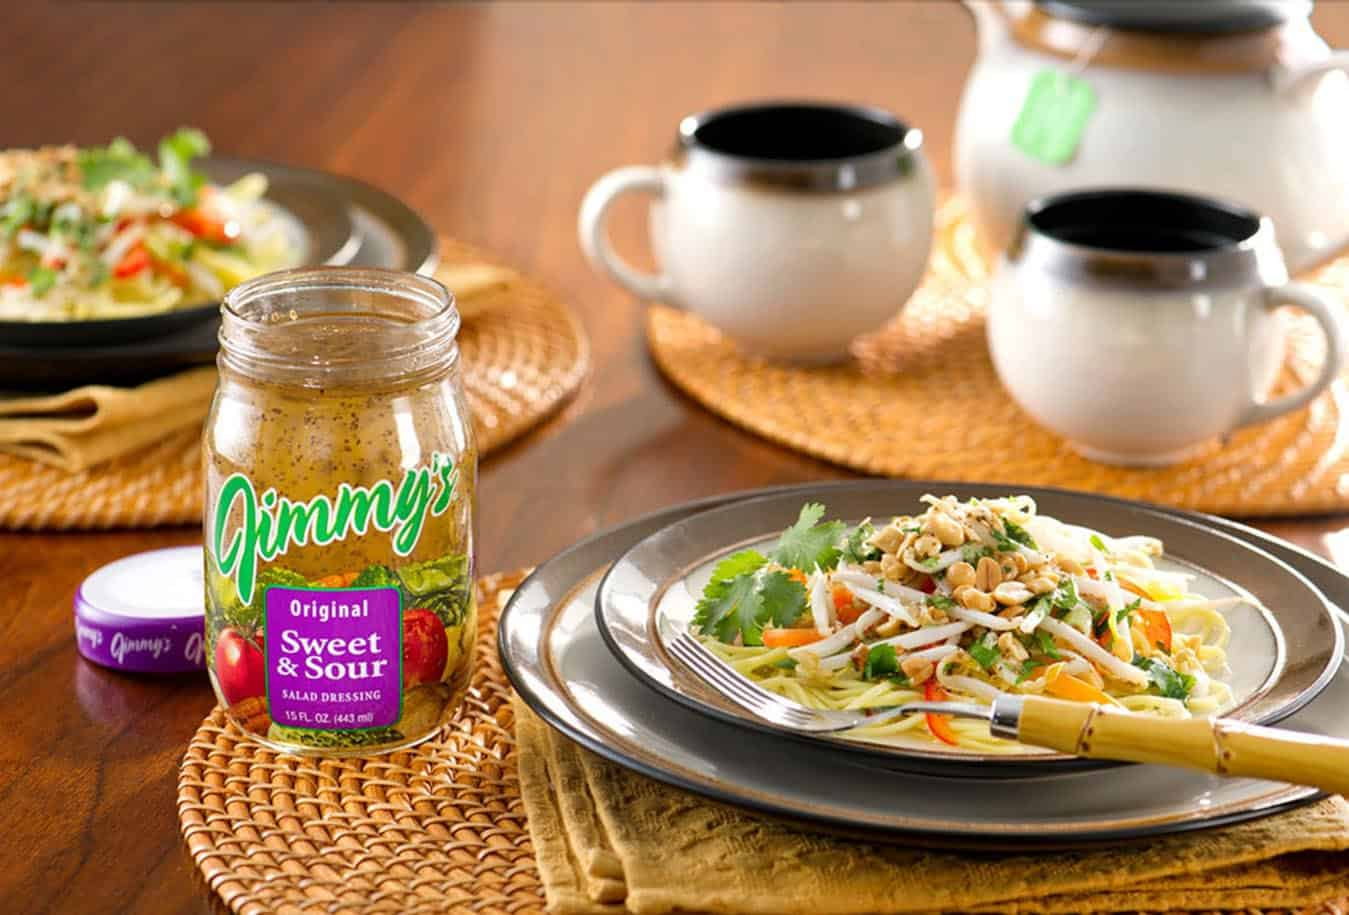 Jimmy's Sweet & Sour Dressing